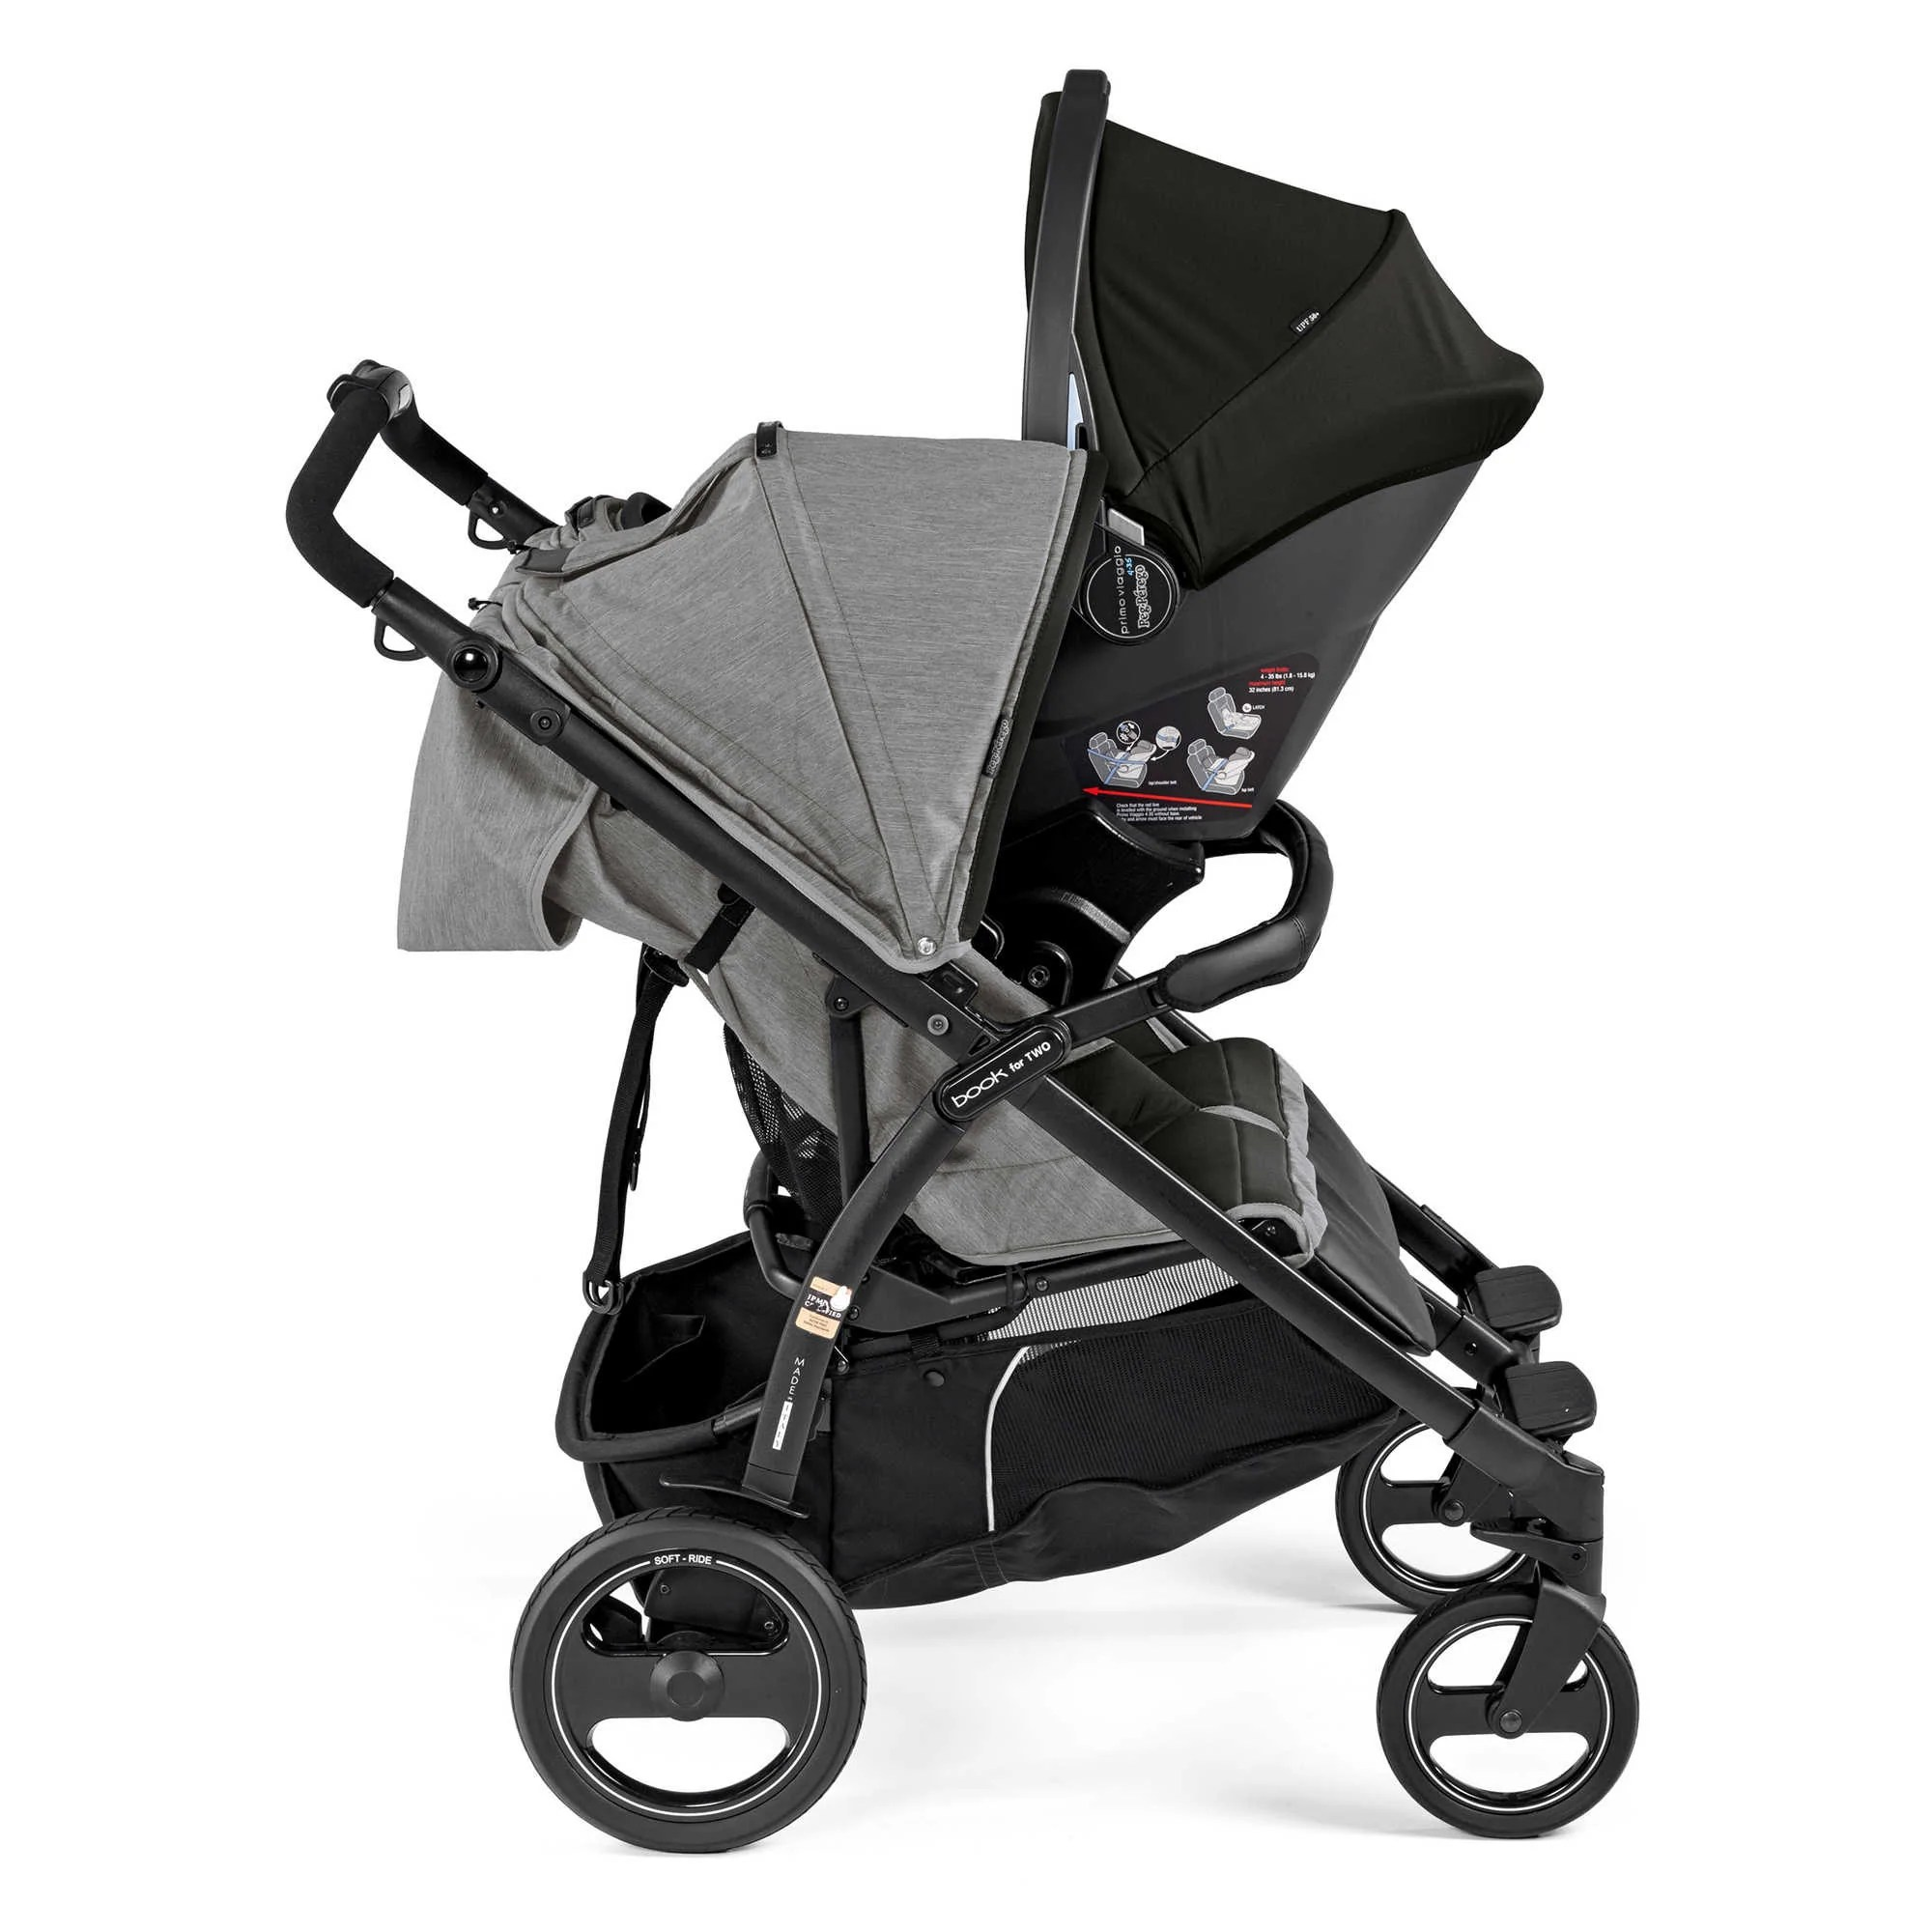 Peg Perego Stroller For Twins Peg Perego Book For Two Double Stroller